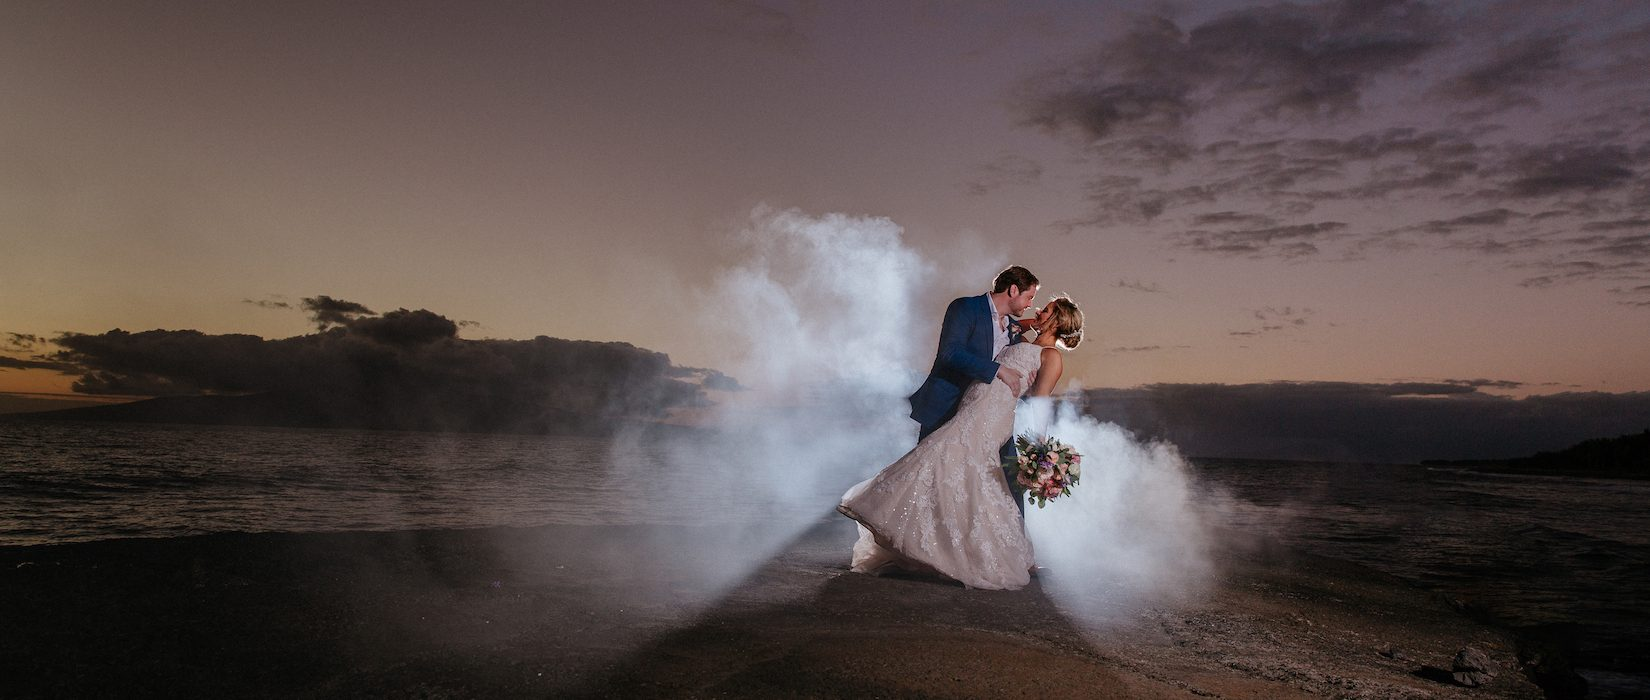 Dramatic wedding scene on the Olowalu pier.